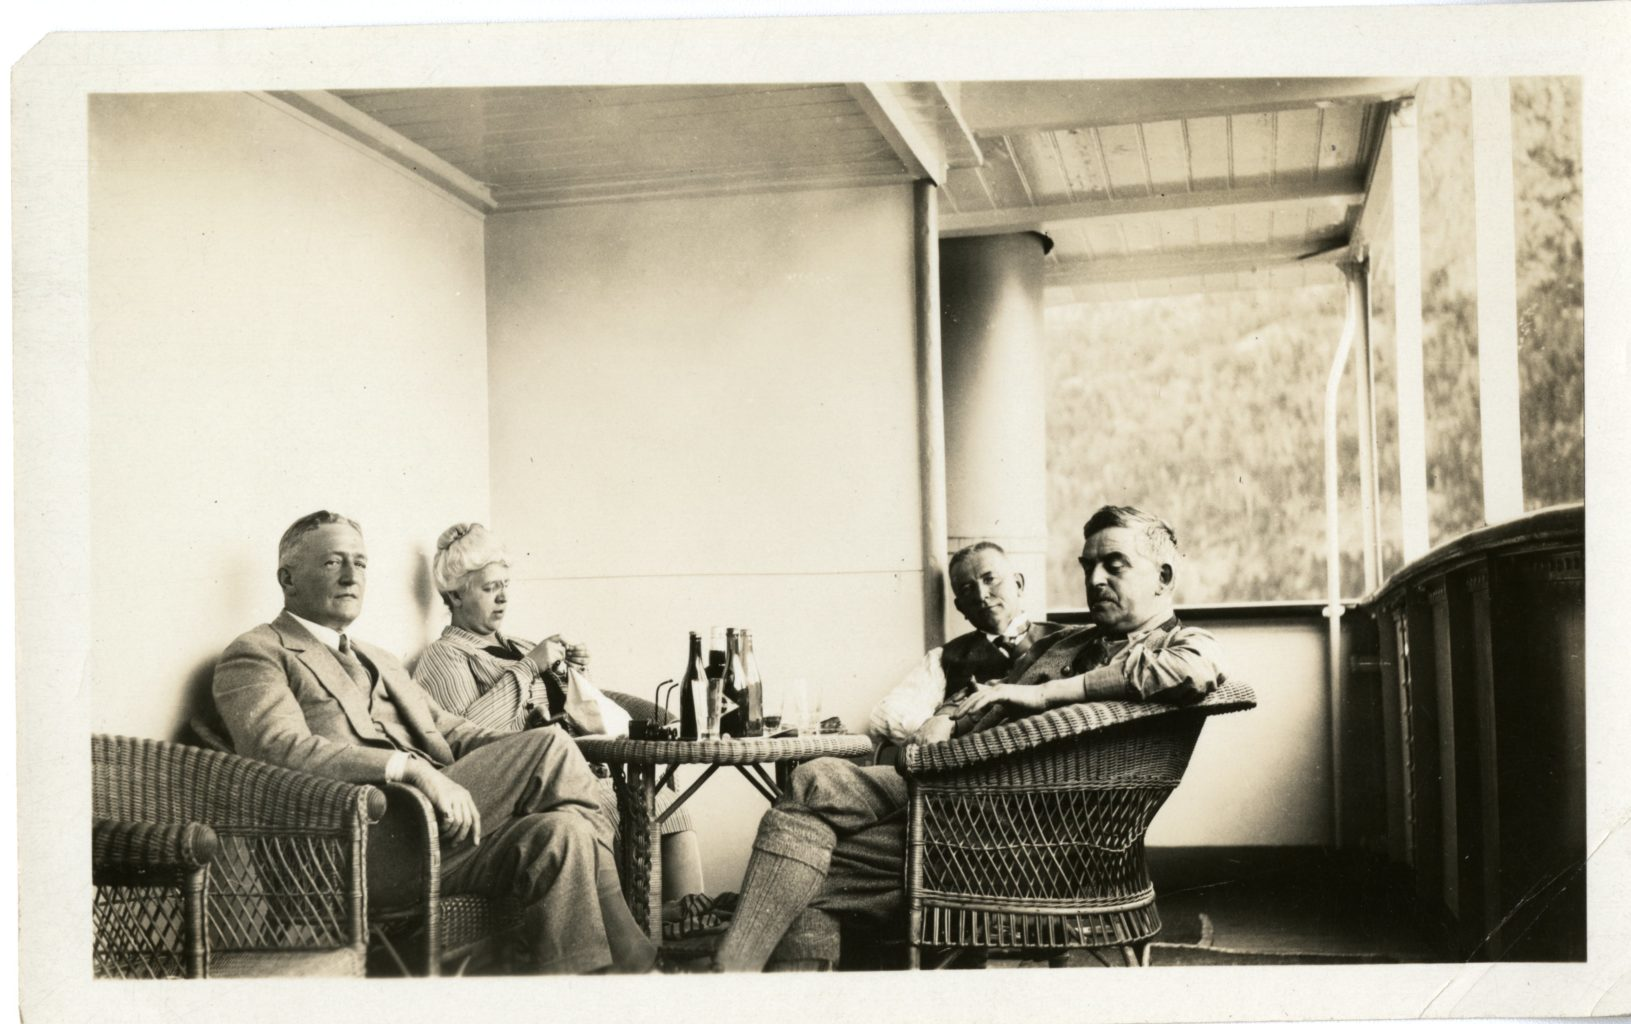 Four individuals sit at table on a porch.